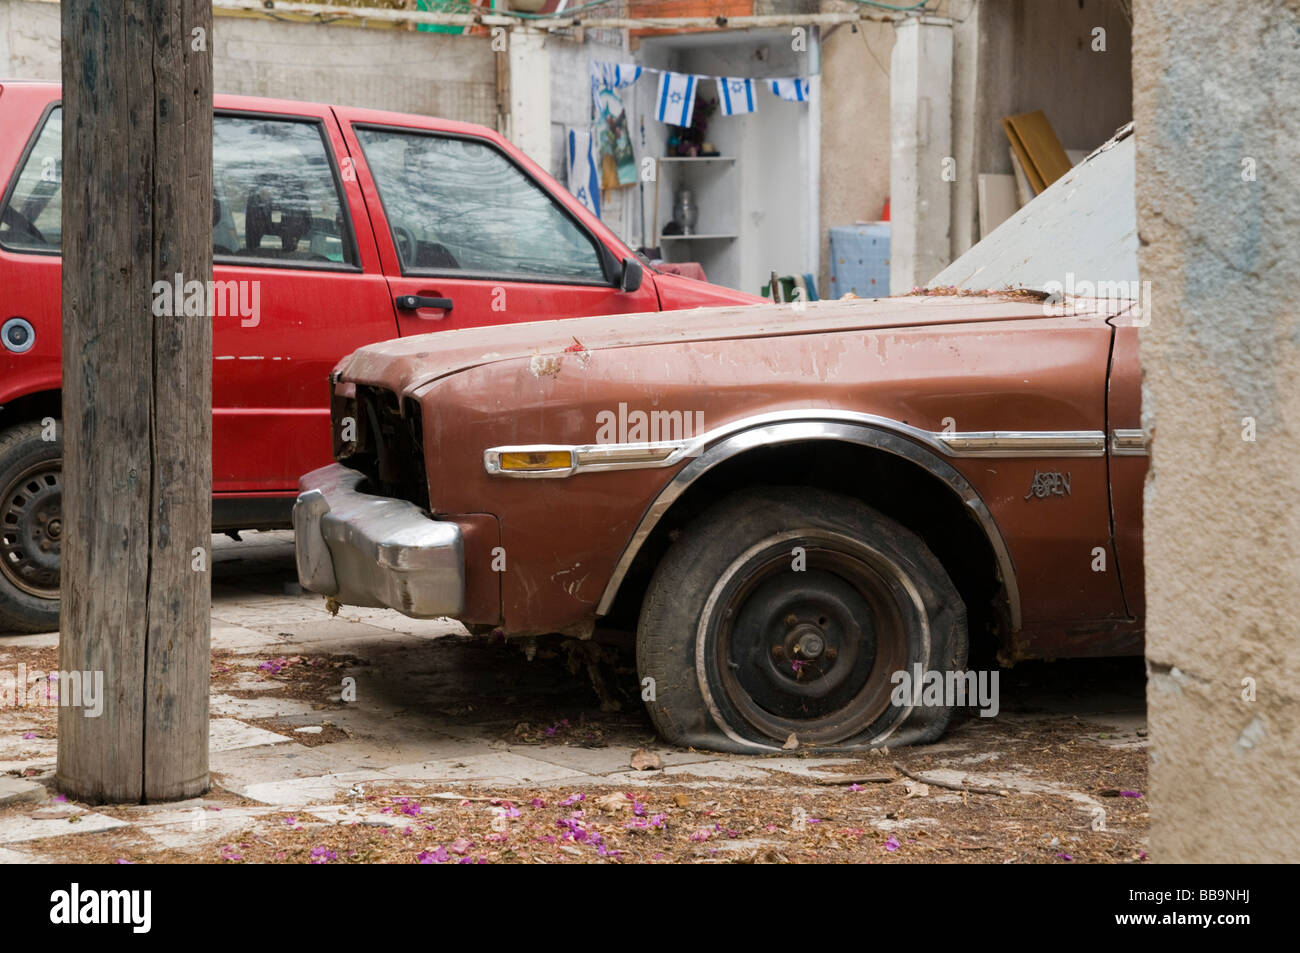 Old neglected car - Stock Image